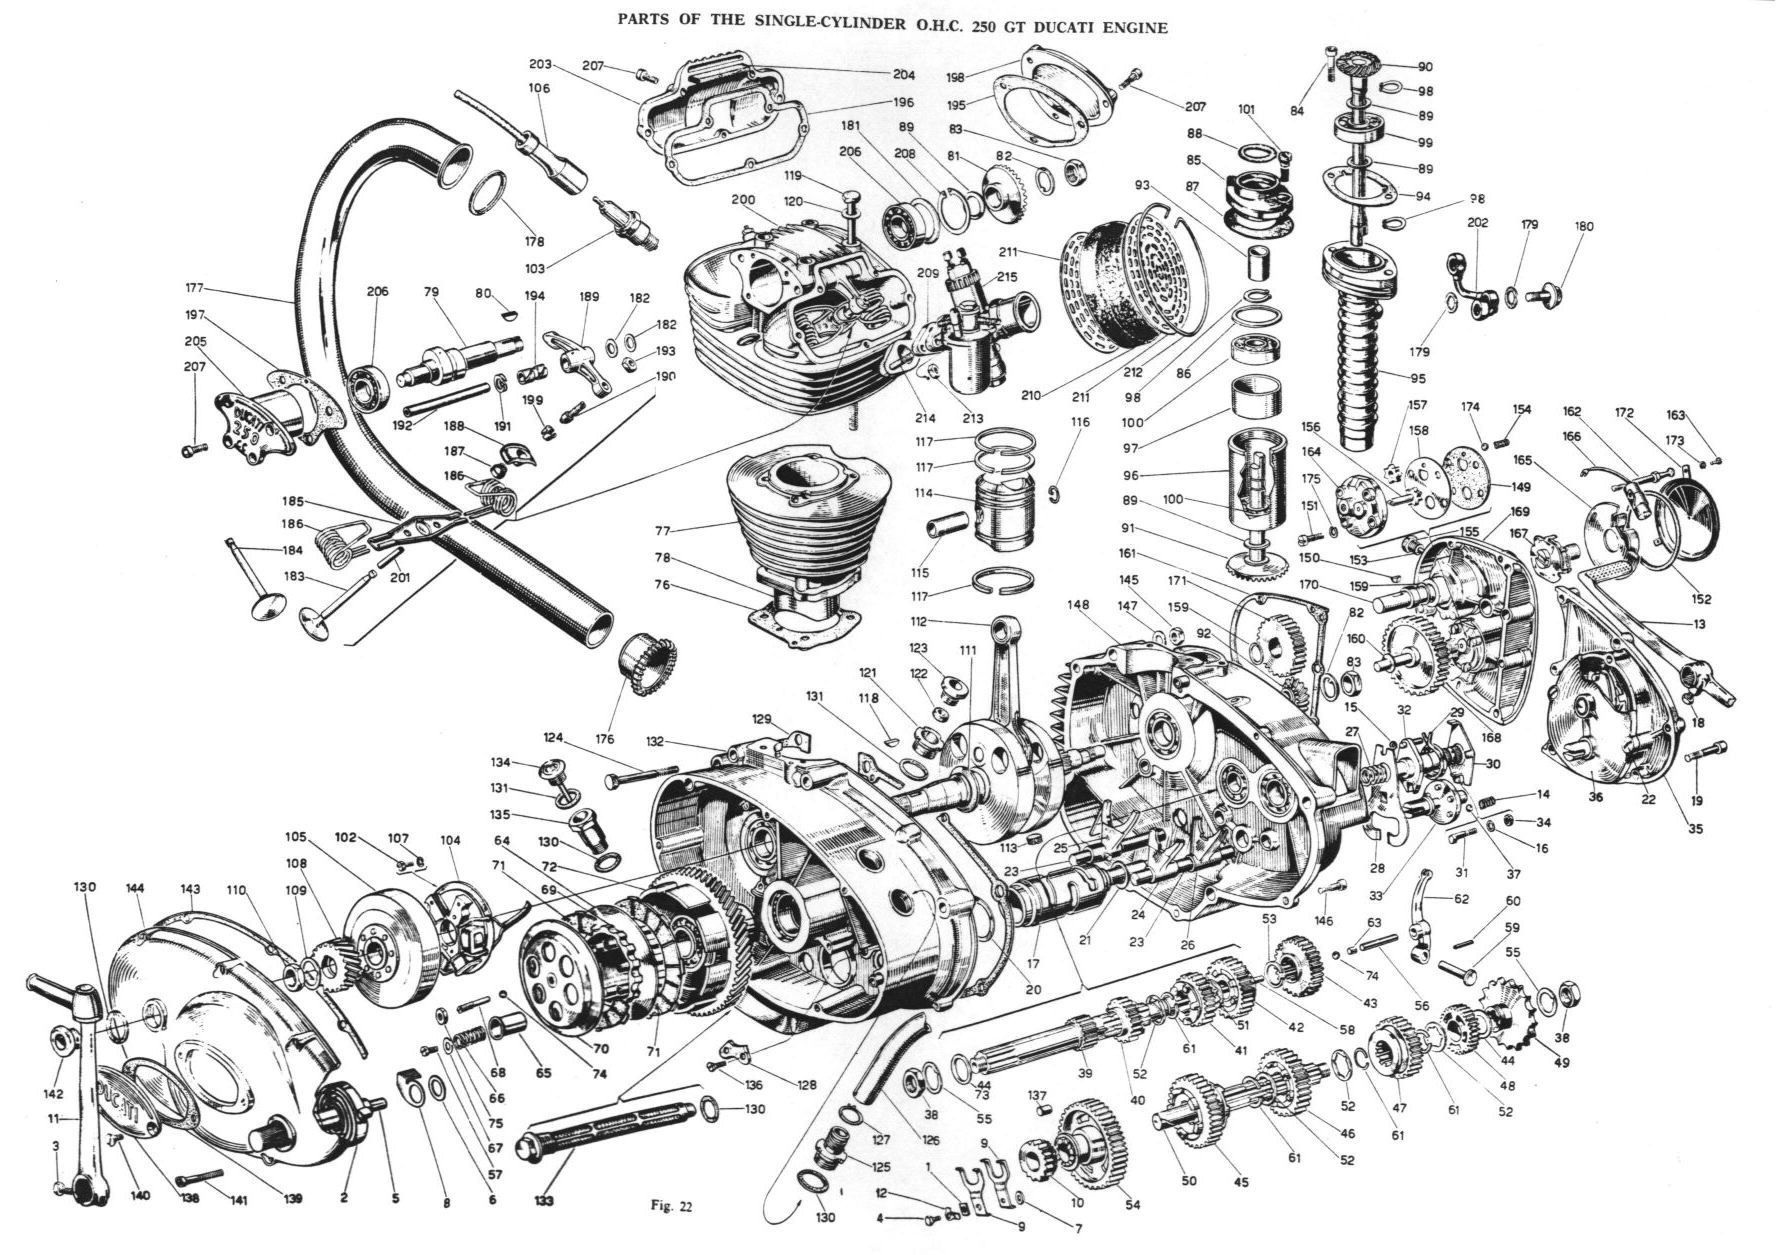 exploded view of a single cylinder ducati engine   product :: deconstruct   Motorcycle